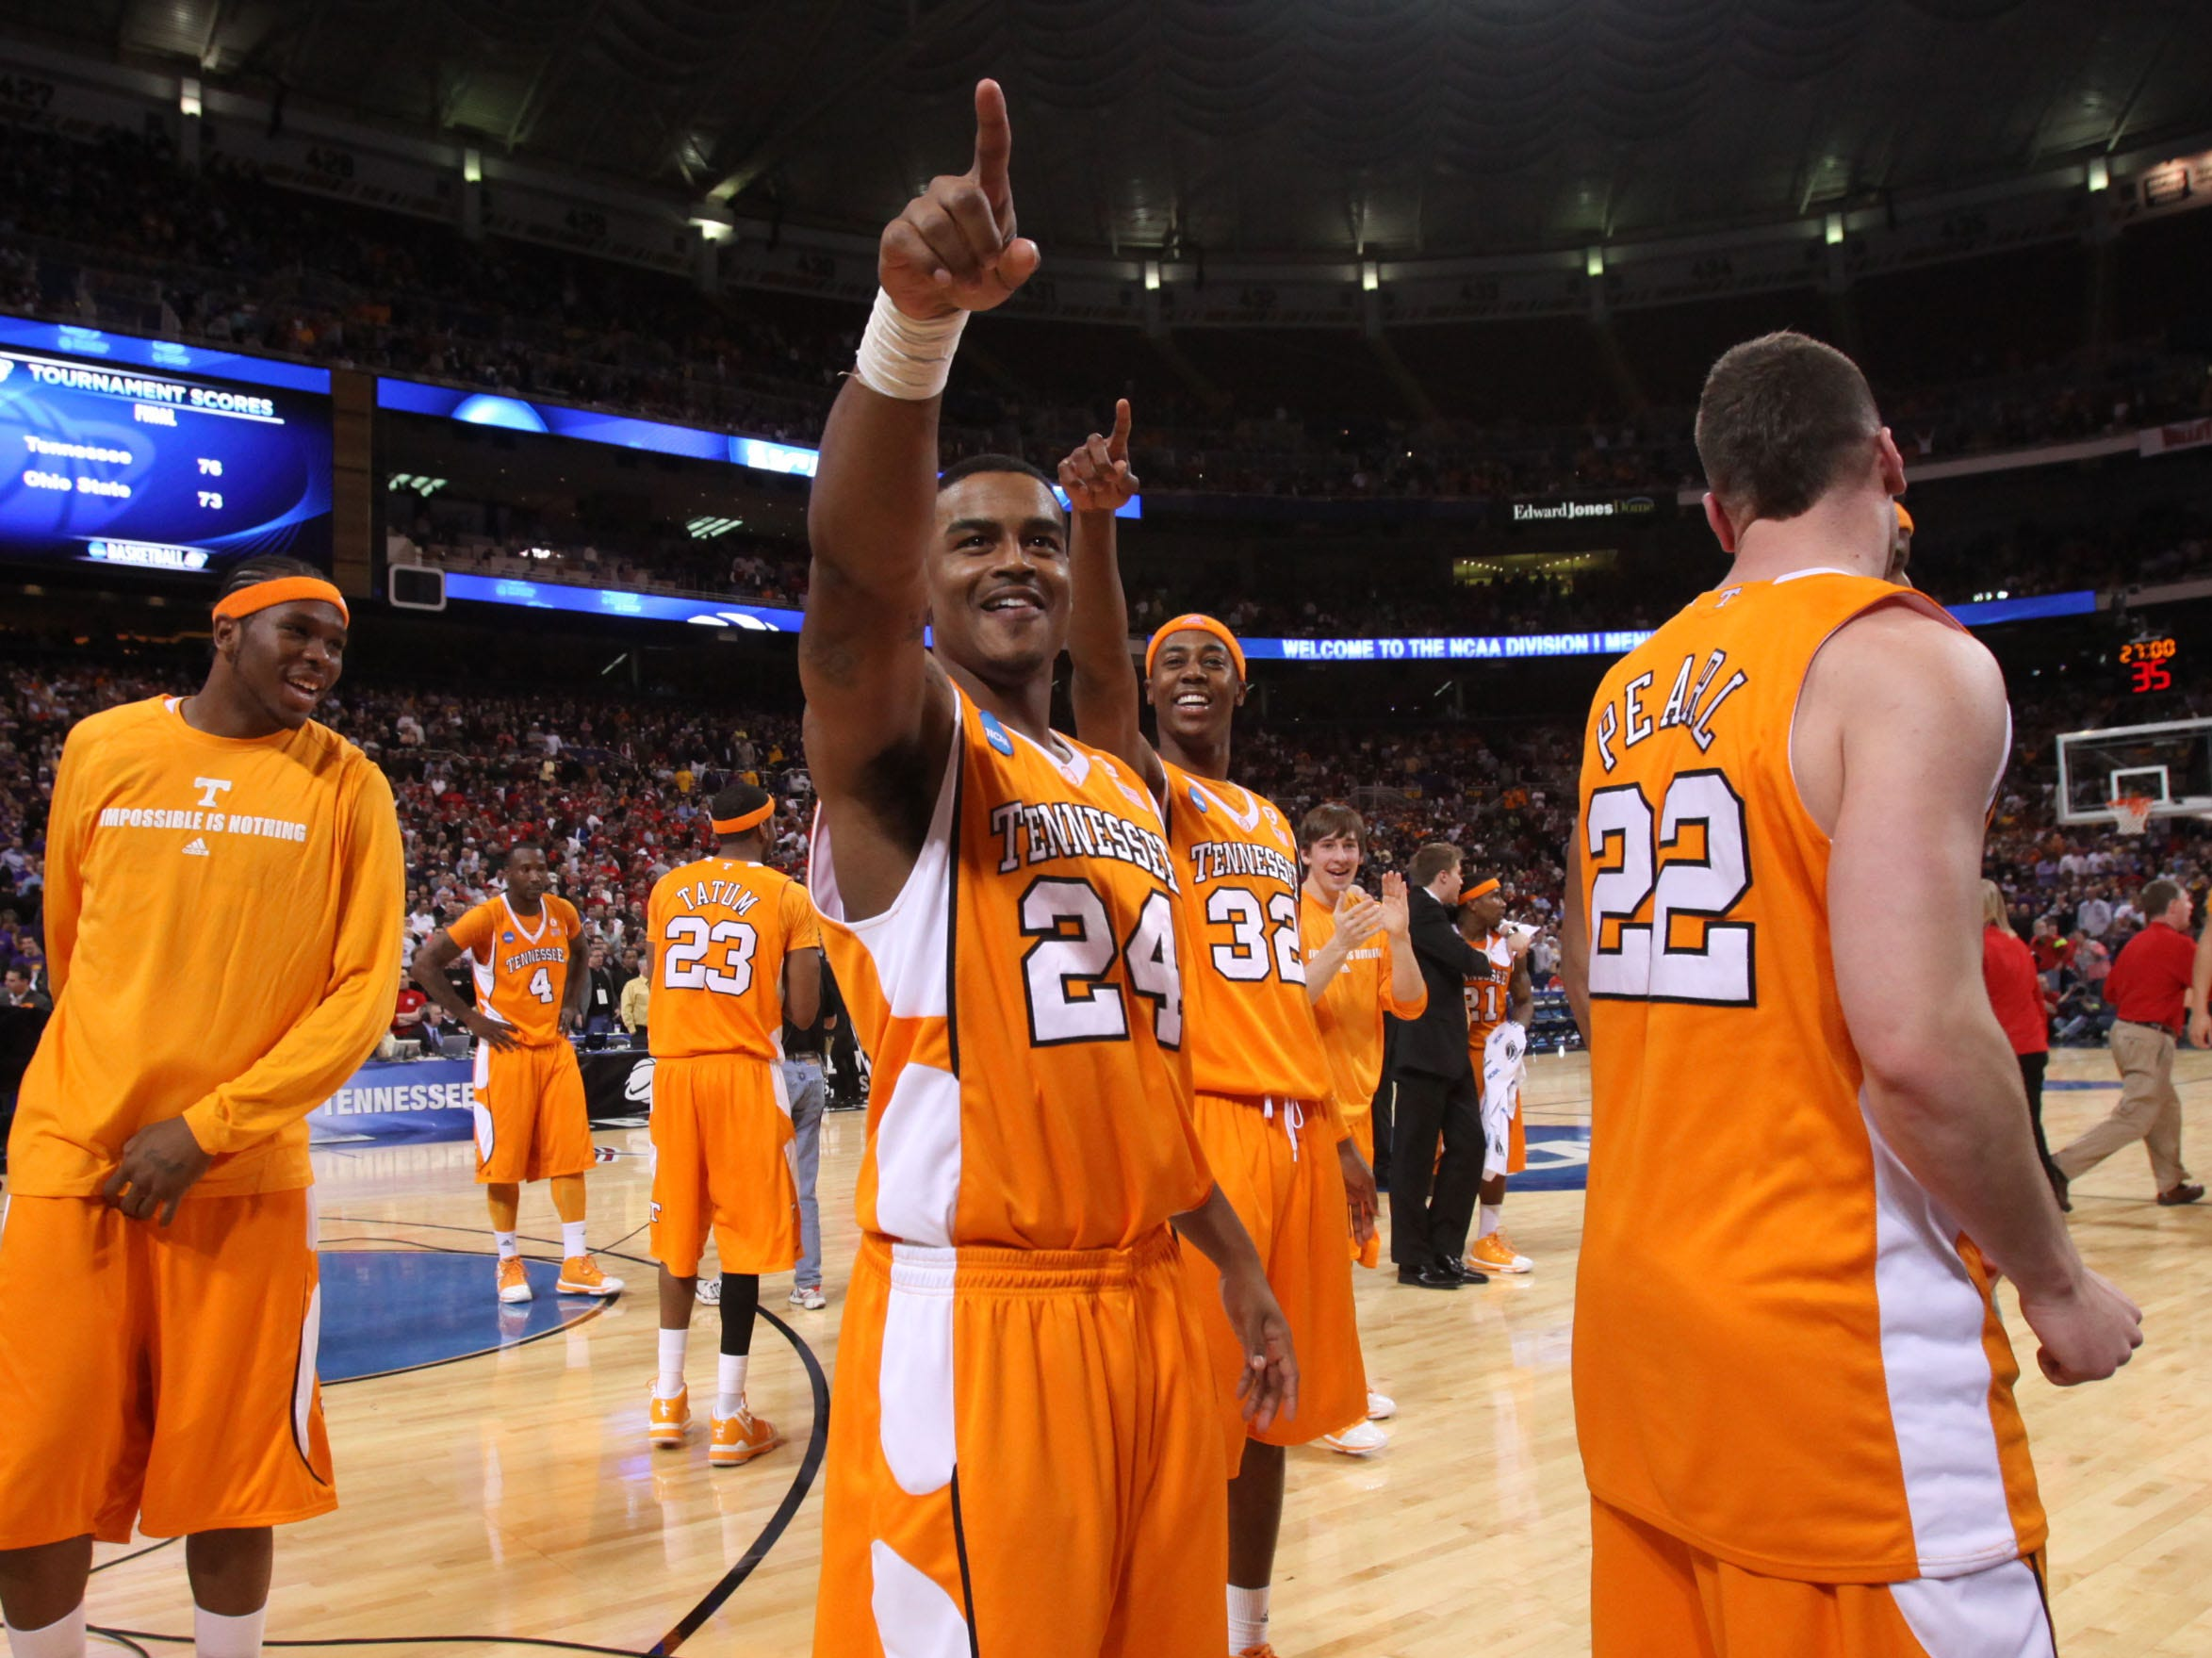 Tennessee's Josh Bone and Scotty Hopson, center, celebrate after the Vols defeated the Ohio State Buckeyes 76-73 during the NCAA tournament Sweet Sixteen at the Edward Jones Dome in St. Louis, Mo., Friday, Mar. 26, 2010.